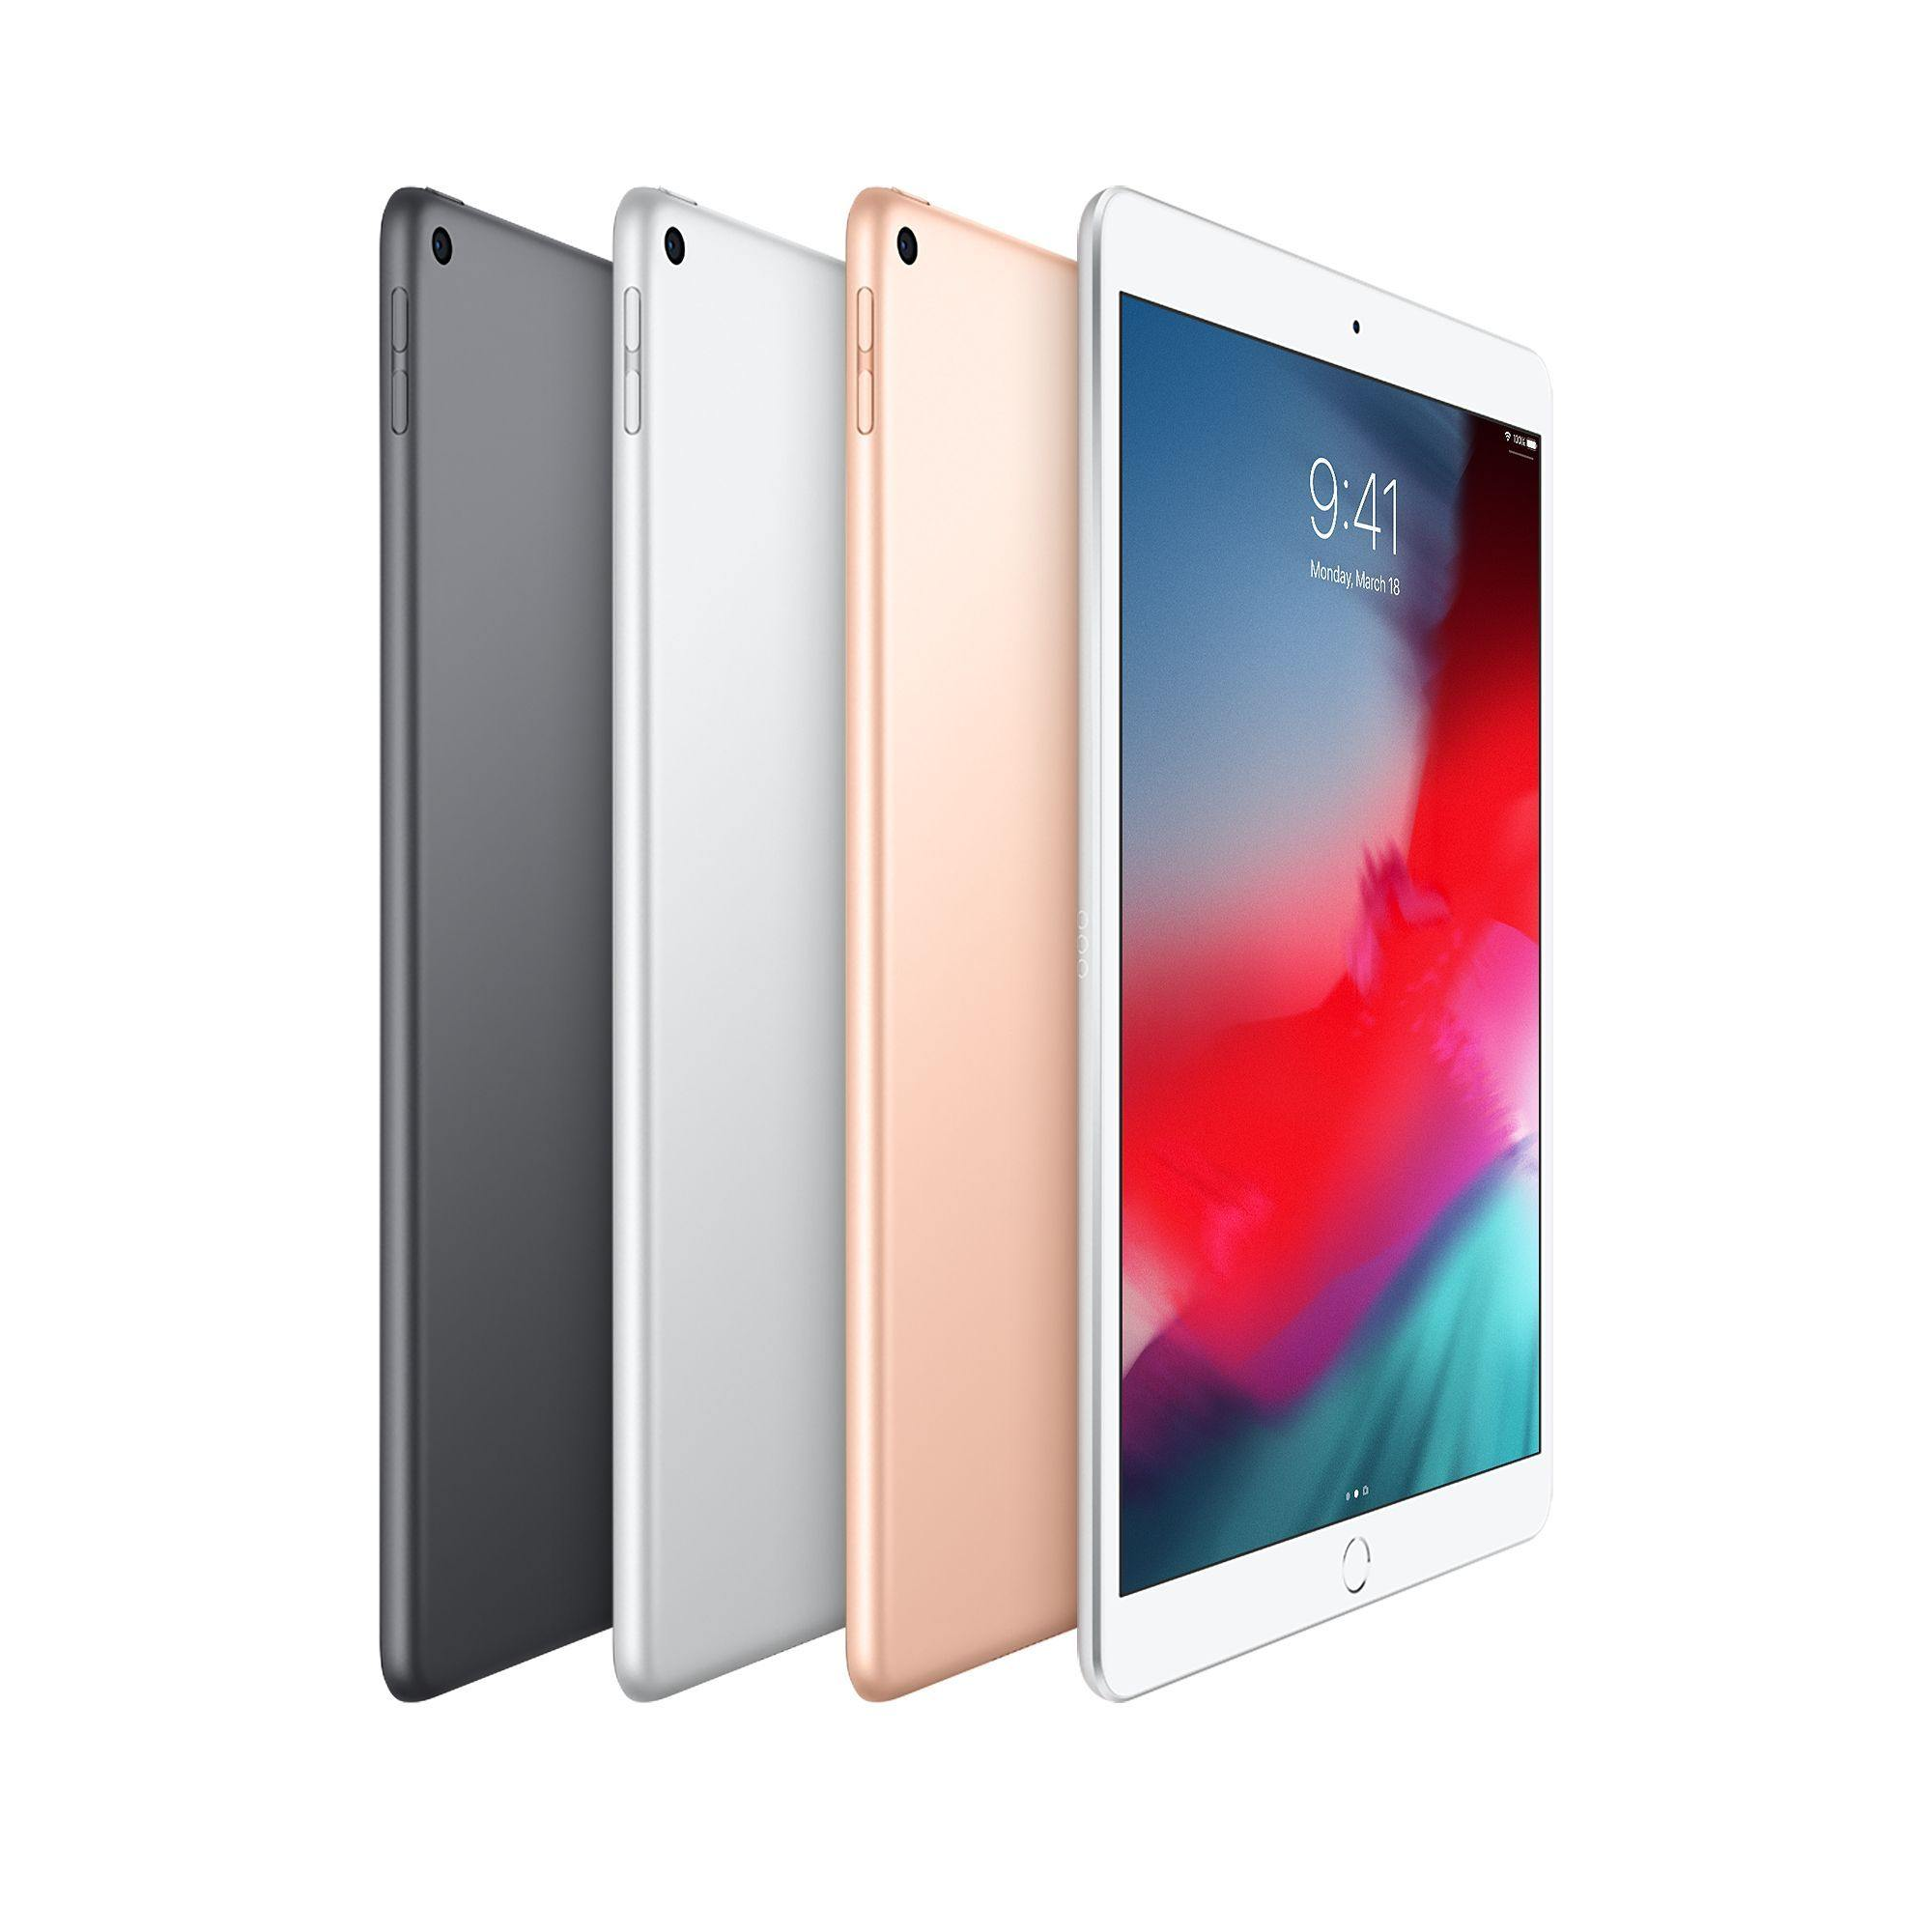 apple iPad air 2 Broken LCD or Touch / Digitizer Glass Repair Service - Time 2 Talk Swansea